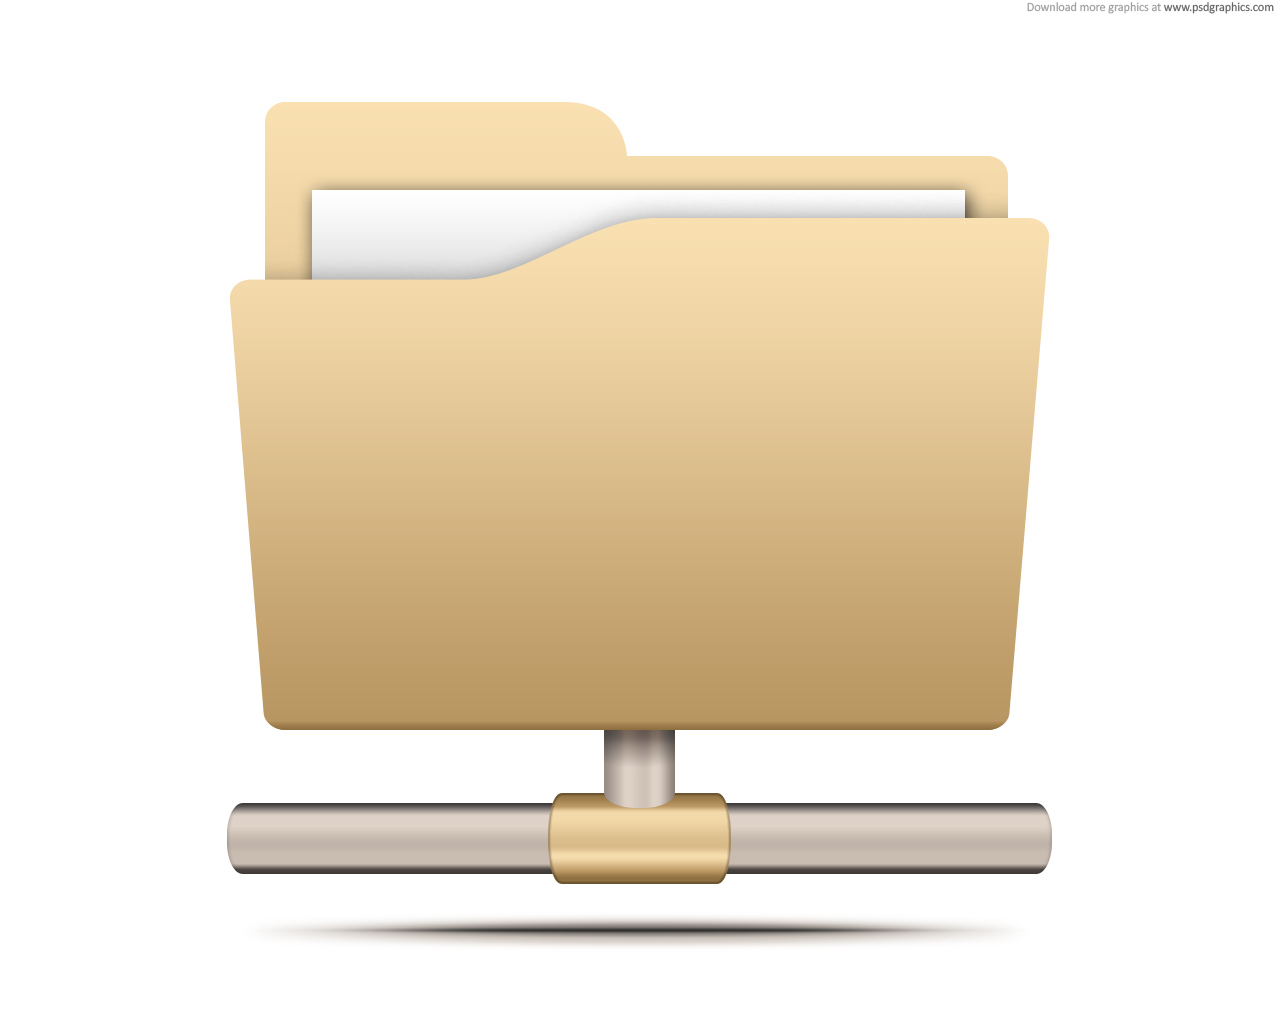 file-sharing-icon1.jpg